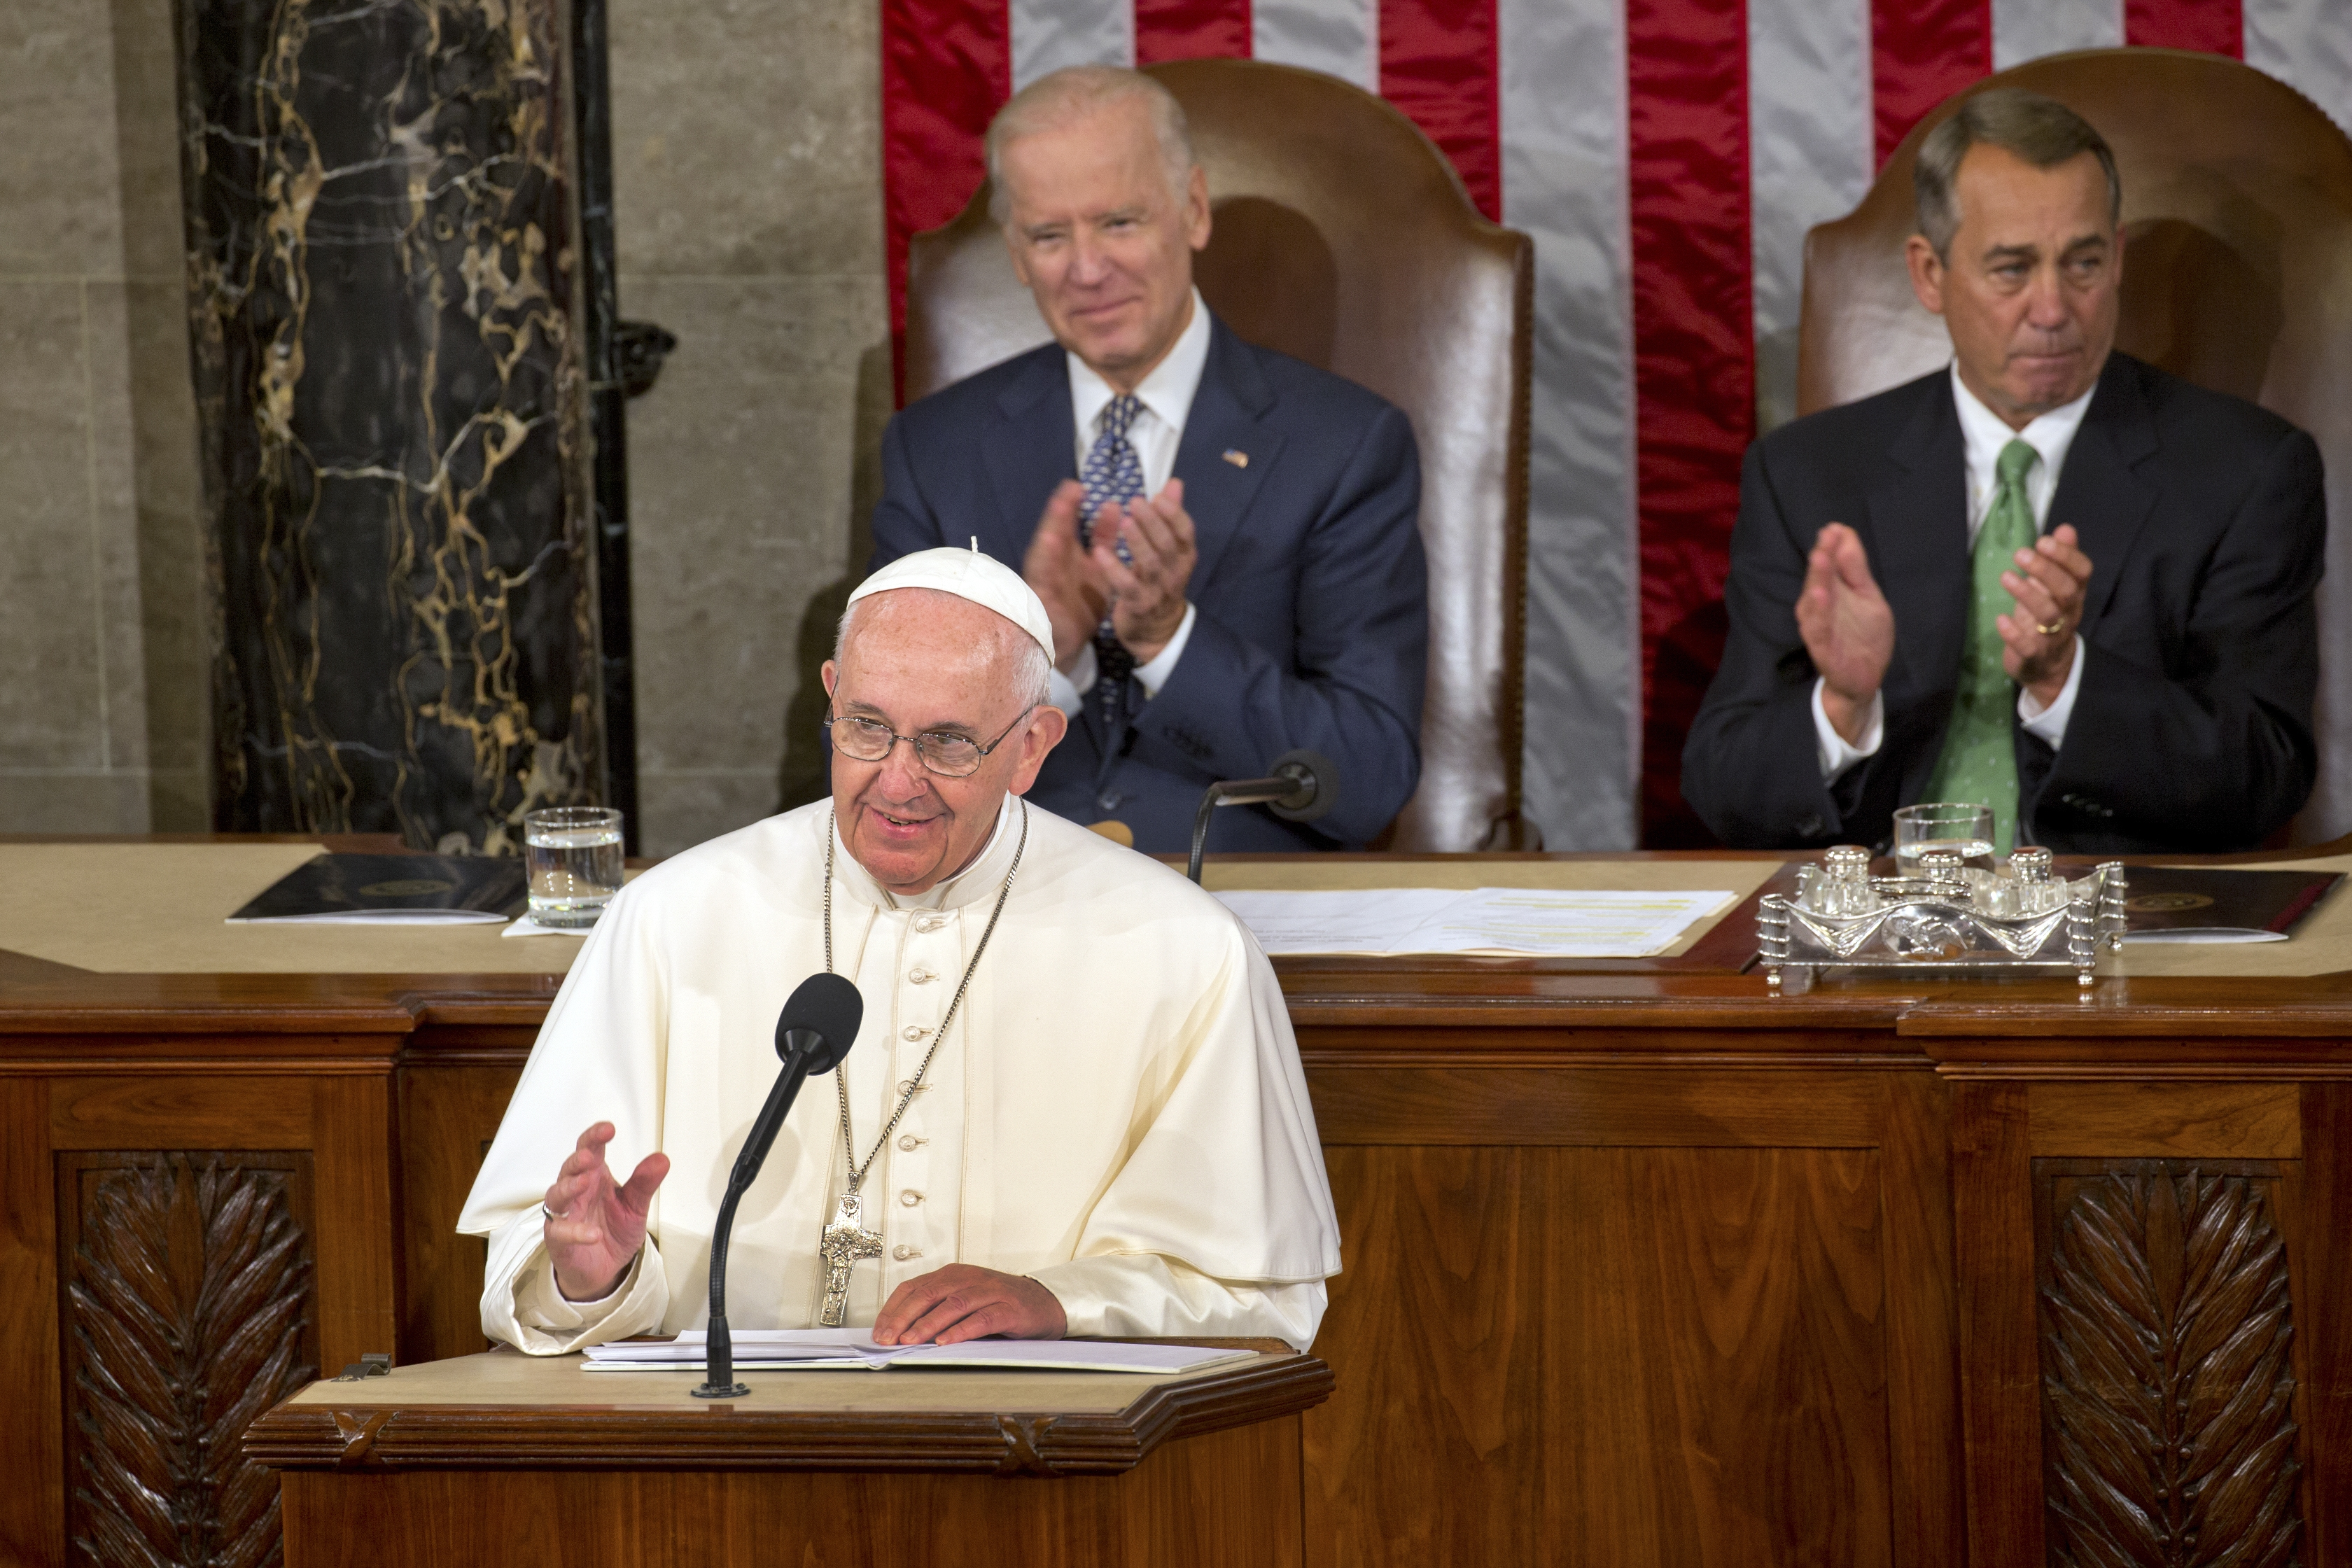 Pope Francis addresses a joint meeting of Congress at the Capitol in Washington, Sept. 24, 2015. The pontiff's high-profile address comes at a time of intense partisan and ideological ferment over divisive policy questions, some of which deeply concern the Roman Catholic Church and its 70 million members in the U.S. (New York Times)